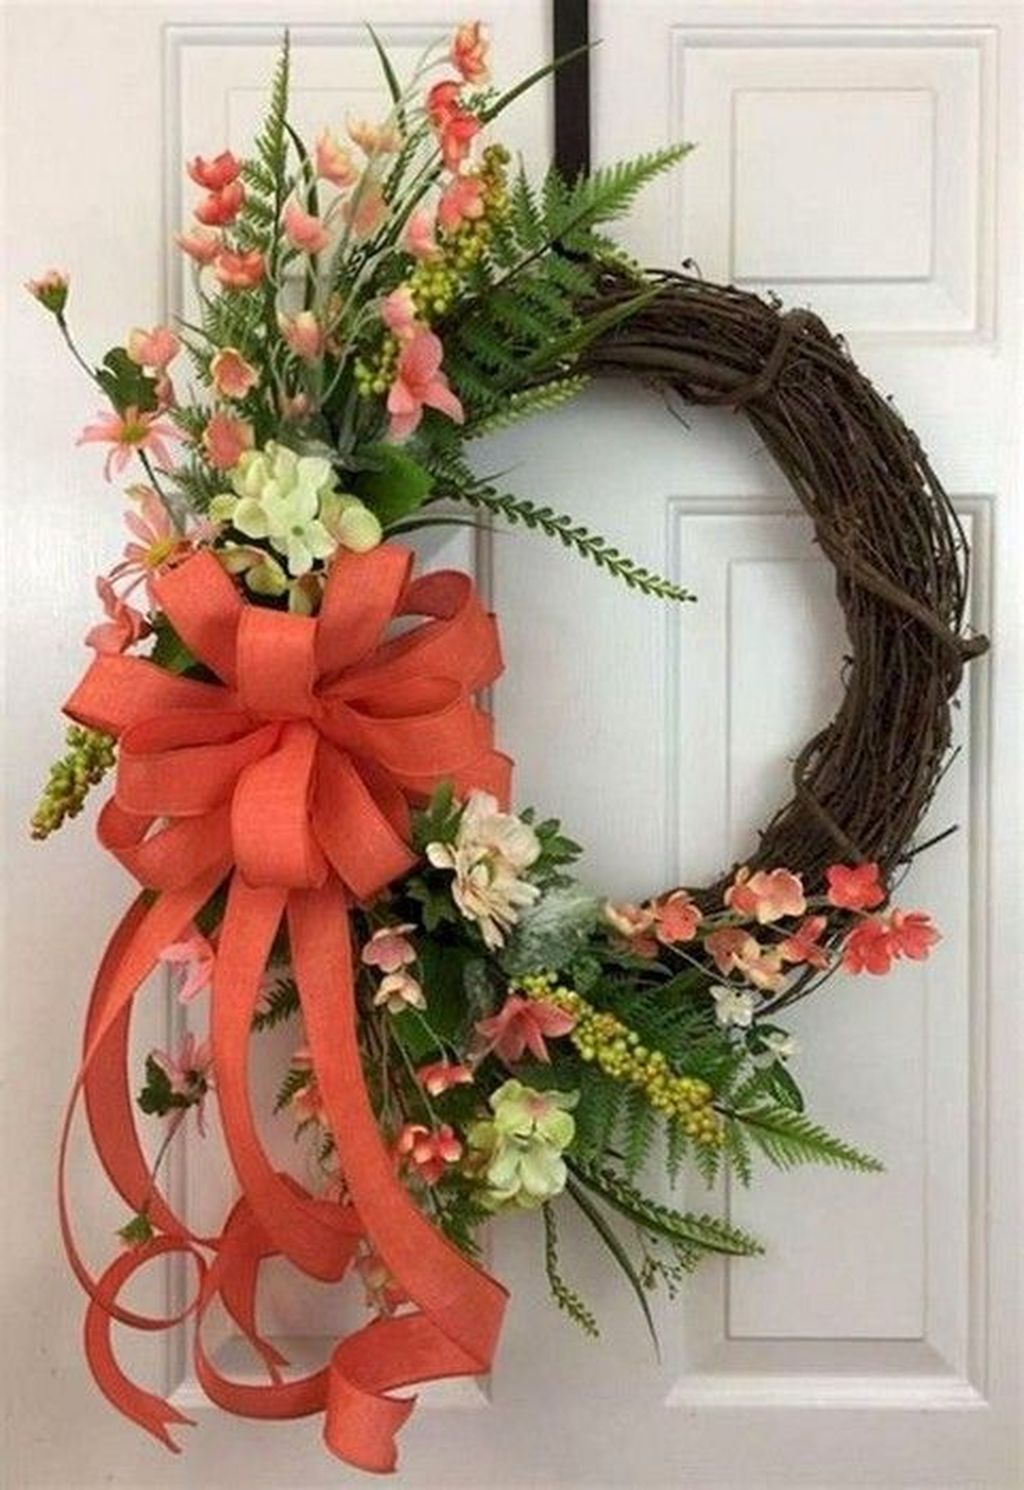 Inspiring Spring Door Wreaths For Your Home Decoration 30